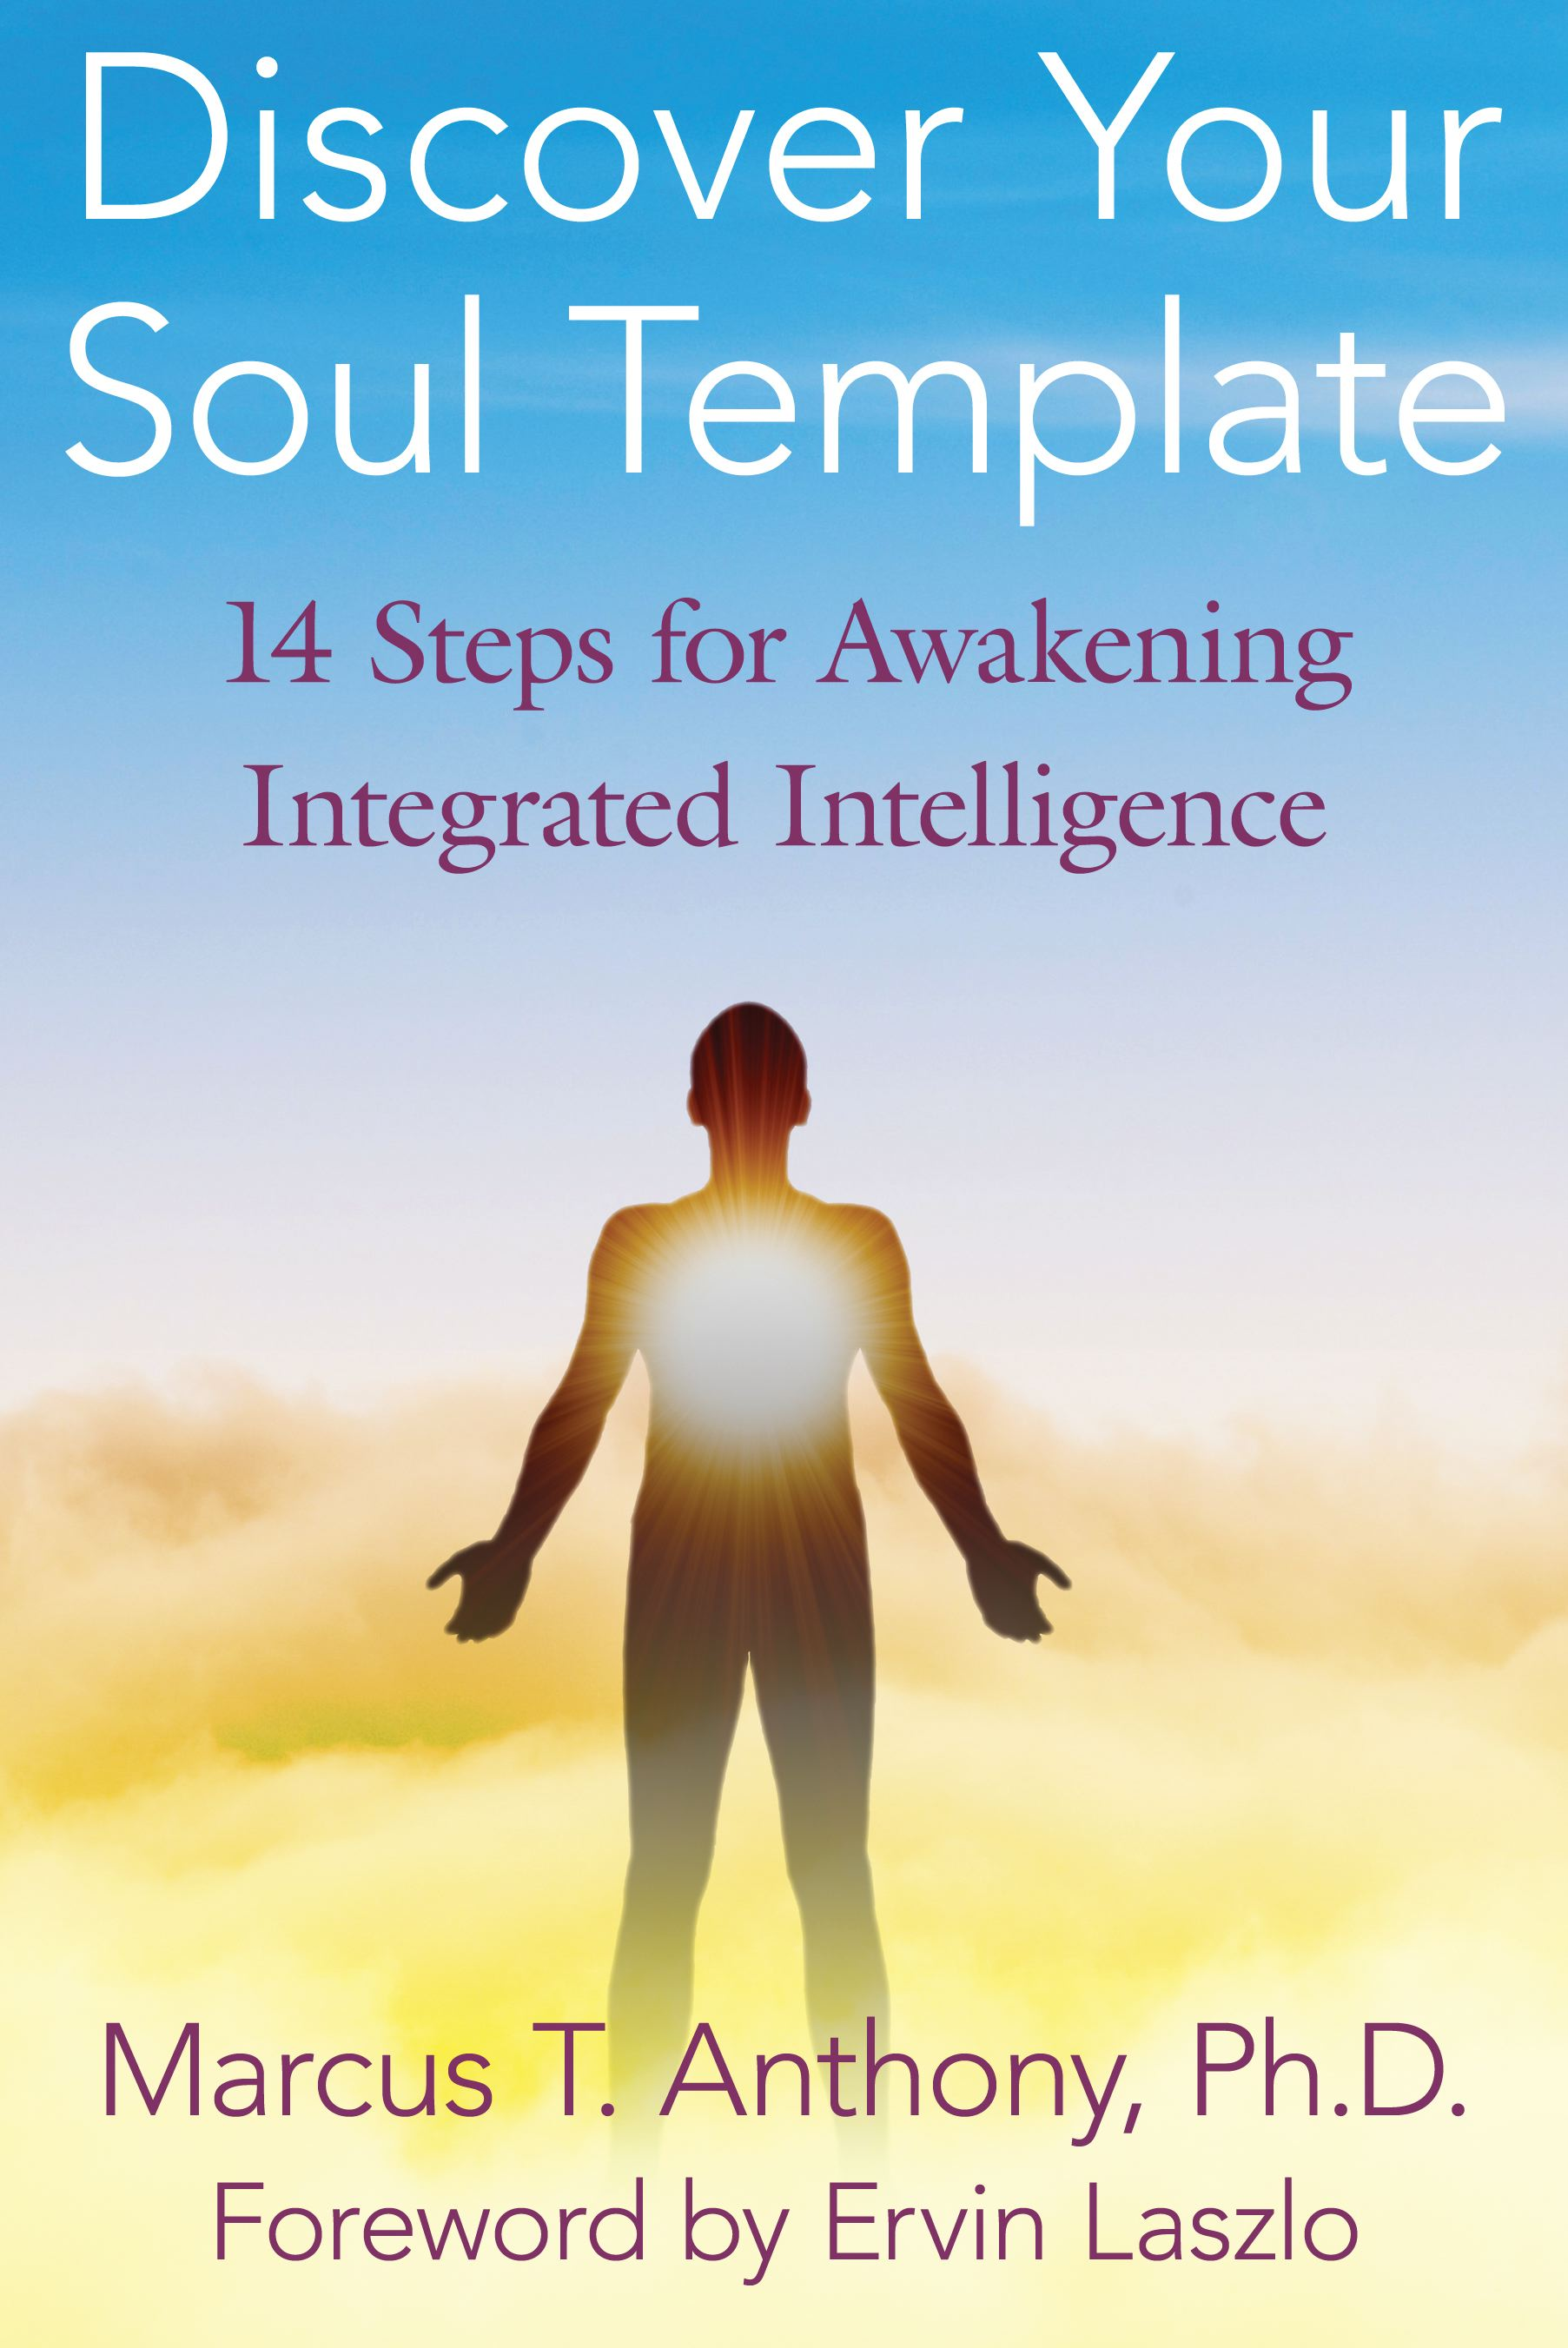 Discover-your-soul-template-9781594774263_hr